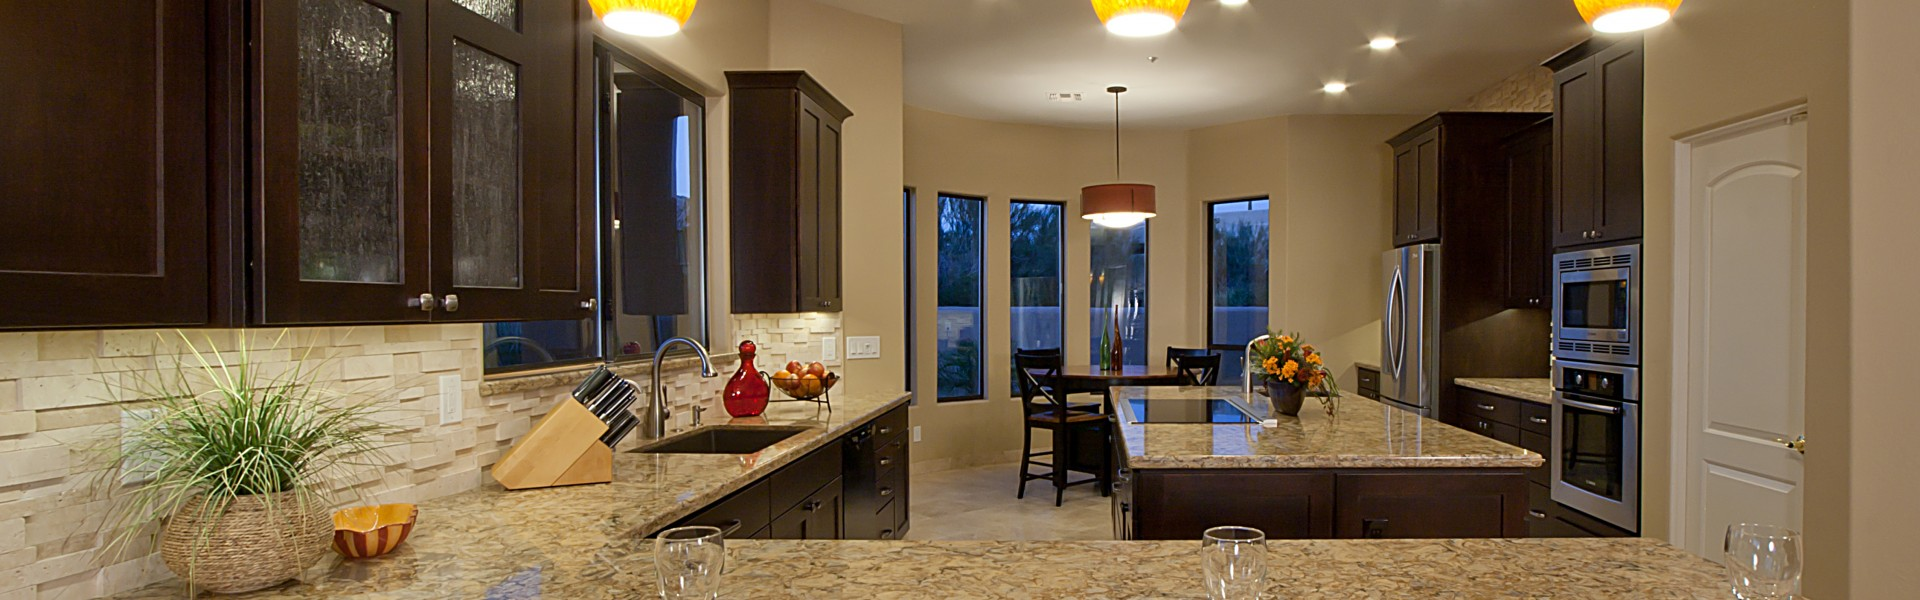 Interior design kitchen remodel bath remodeling custom home interiors scottsdale Home design ideas pictures remodel and decor